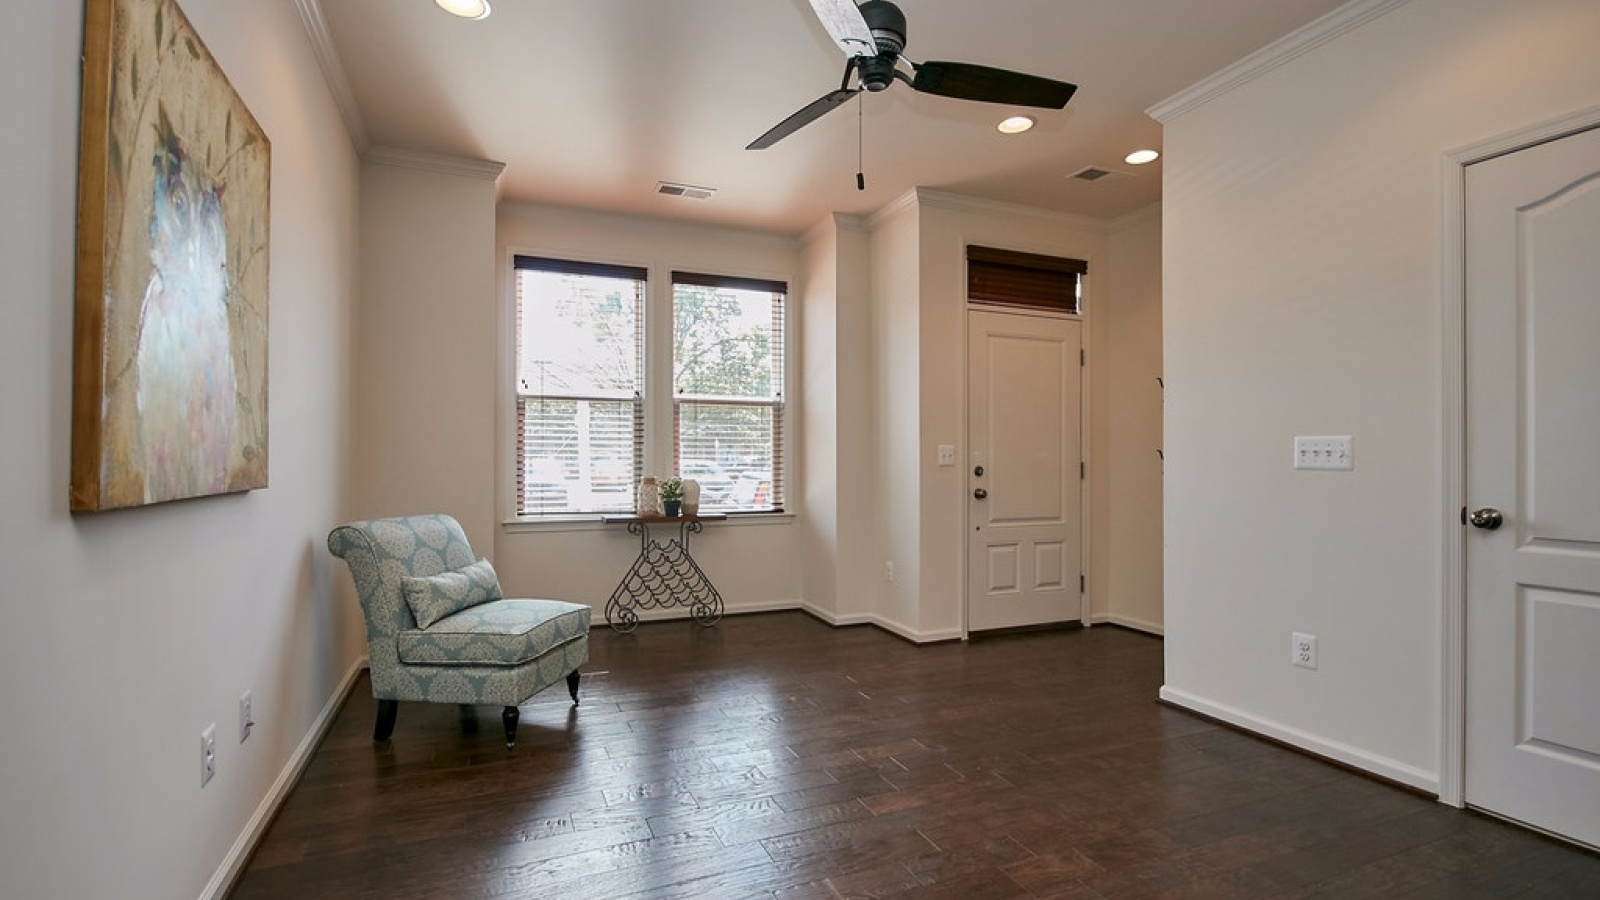 3 Bedrooms, Townhouse, For sale, Center Street, 2 Bathrooms, Listing ID 1078, Manassas, United States, 20110,